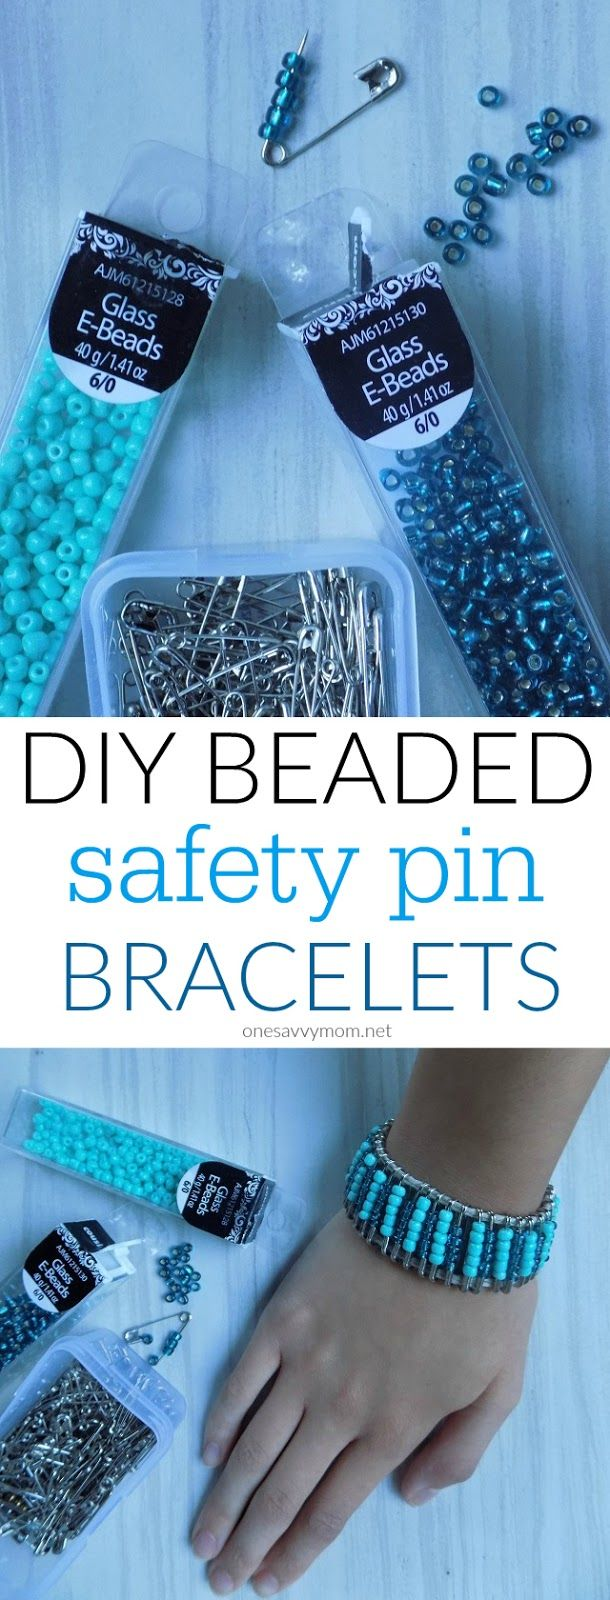 DIY Beaded Safety Pin Bracelets - Fun Tween and Teen Craft / Jewelry Making Idea - Simple Supplies